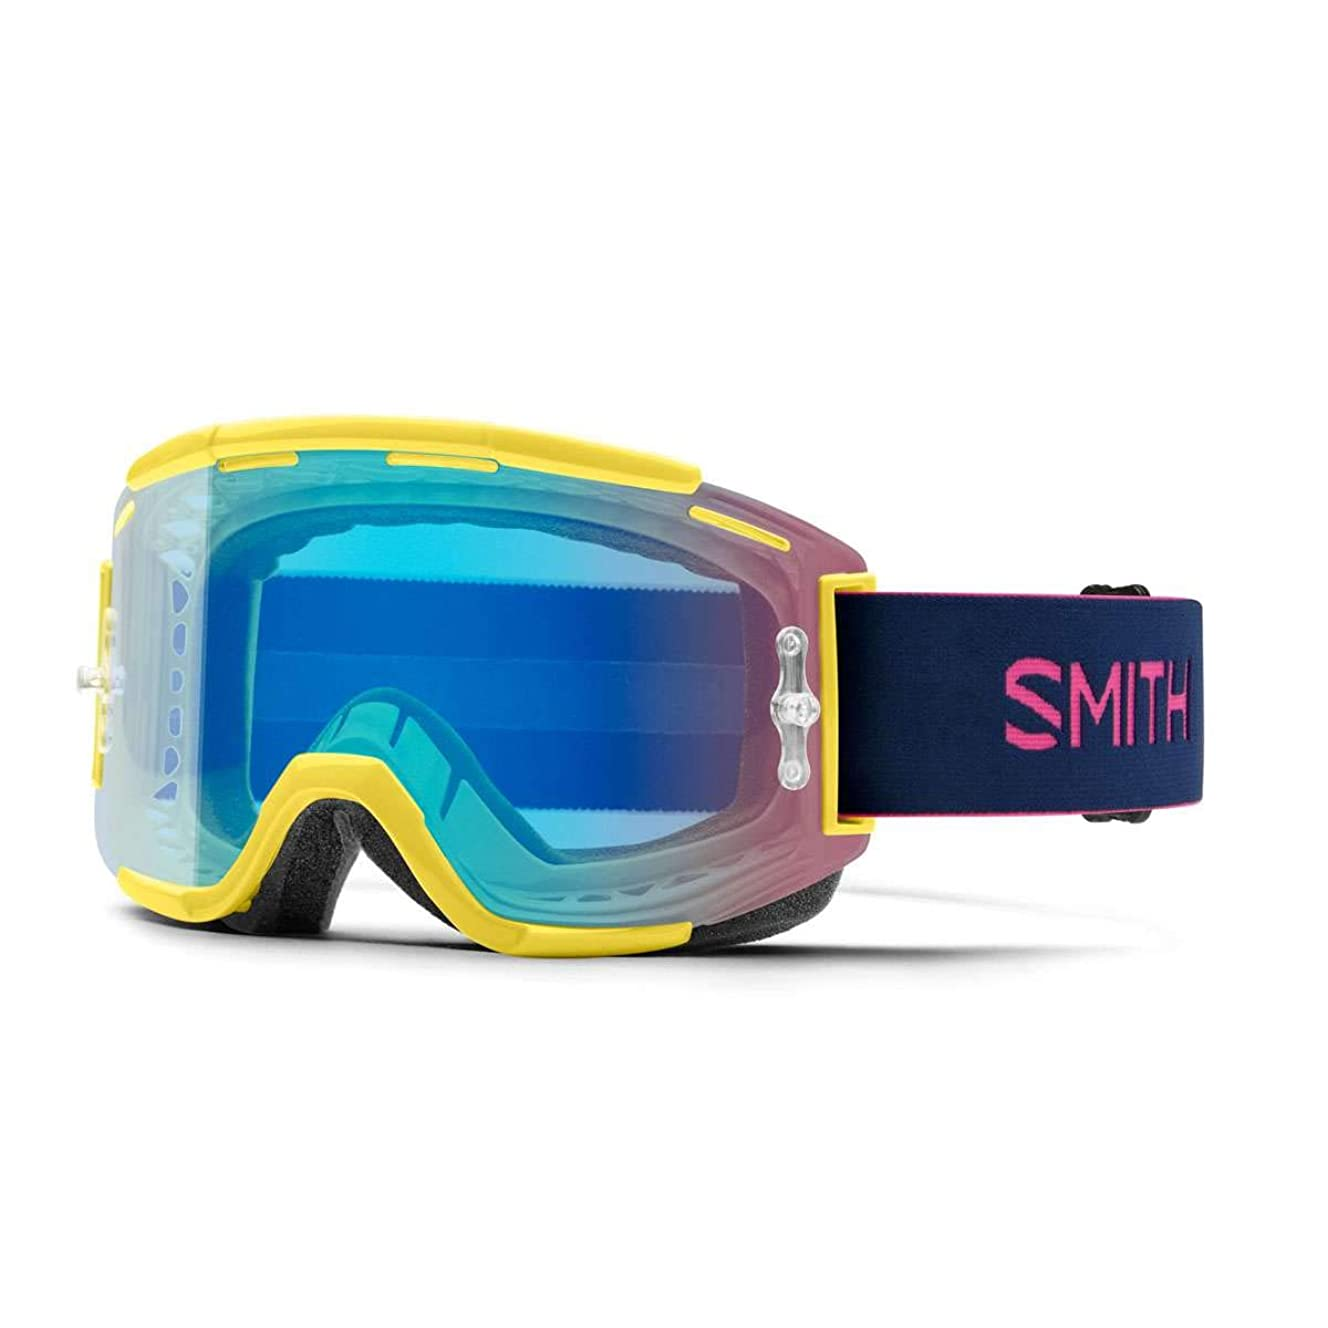 Smith Optics Squad Adult MTB Off-Road Cycling Goggles - Citron/Indigo/ChromaPop Contrast Rose/One Size